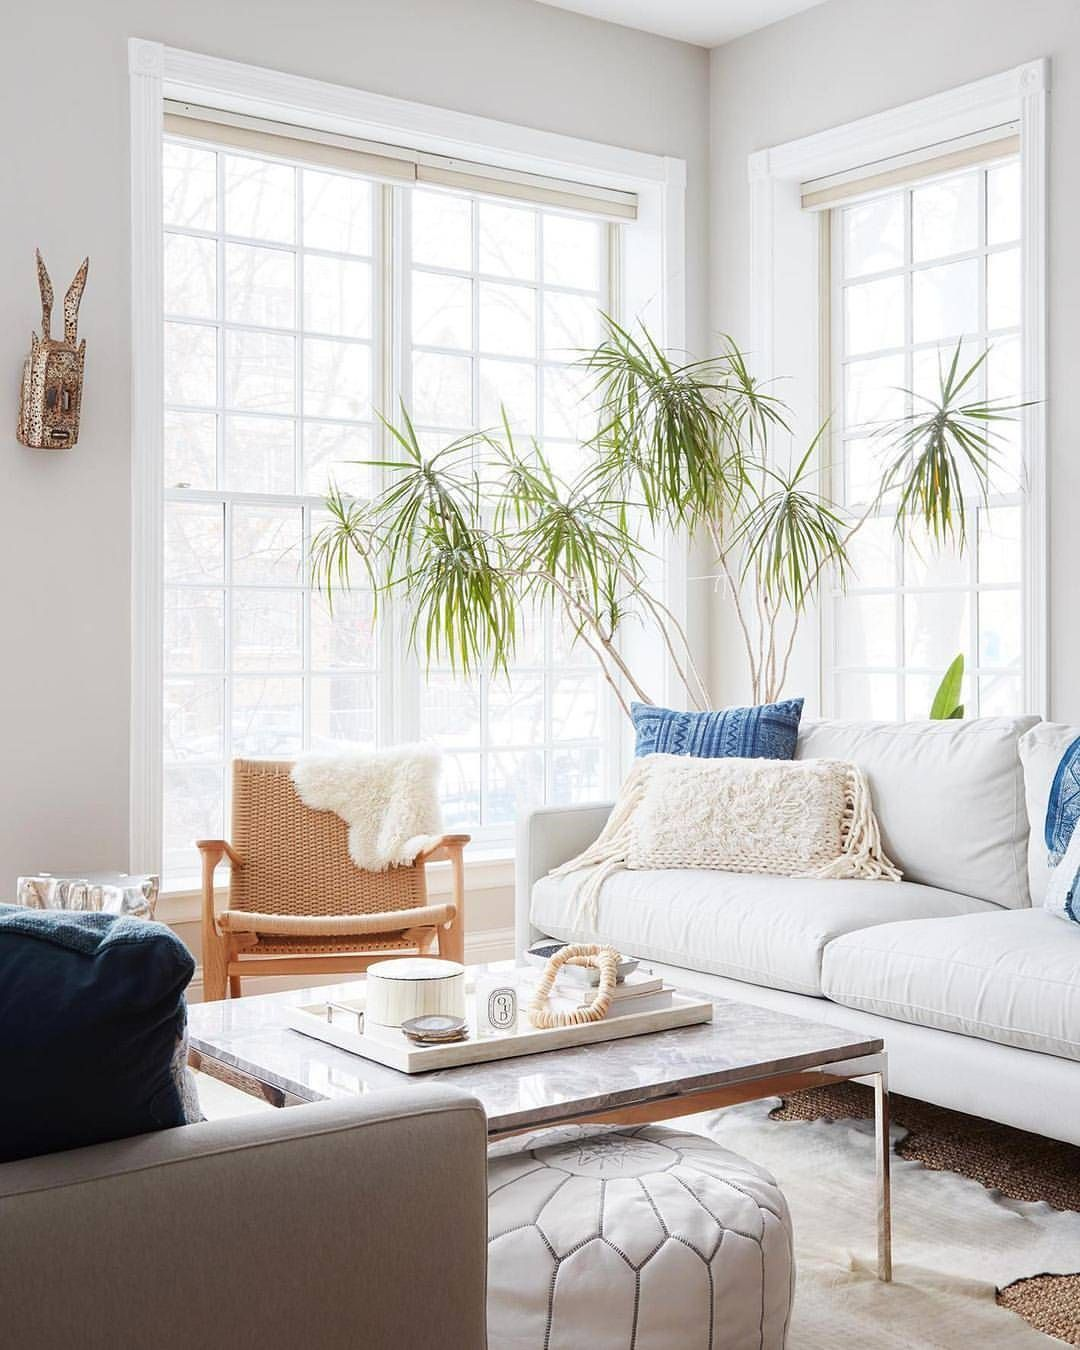 For an aspiring interior designer in lincoln park homepolish   guinevere johnson was just the design collaborator to bring her home next level also pin by katrina manetta on decor rh pinterest